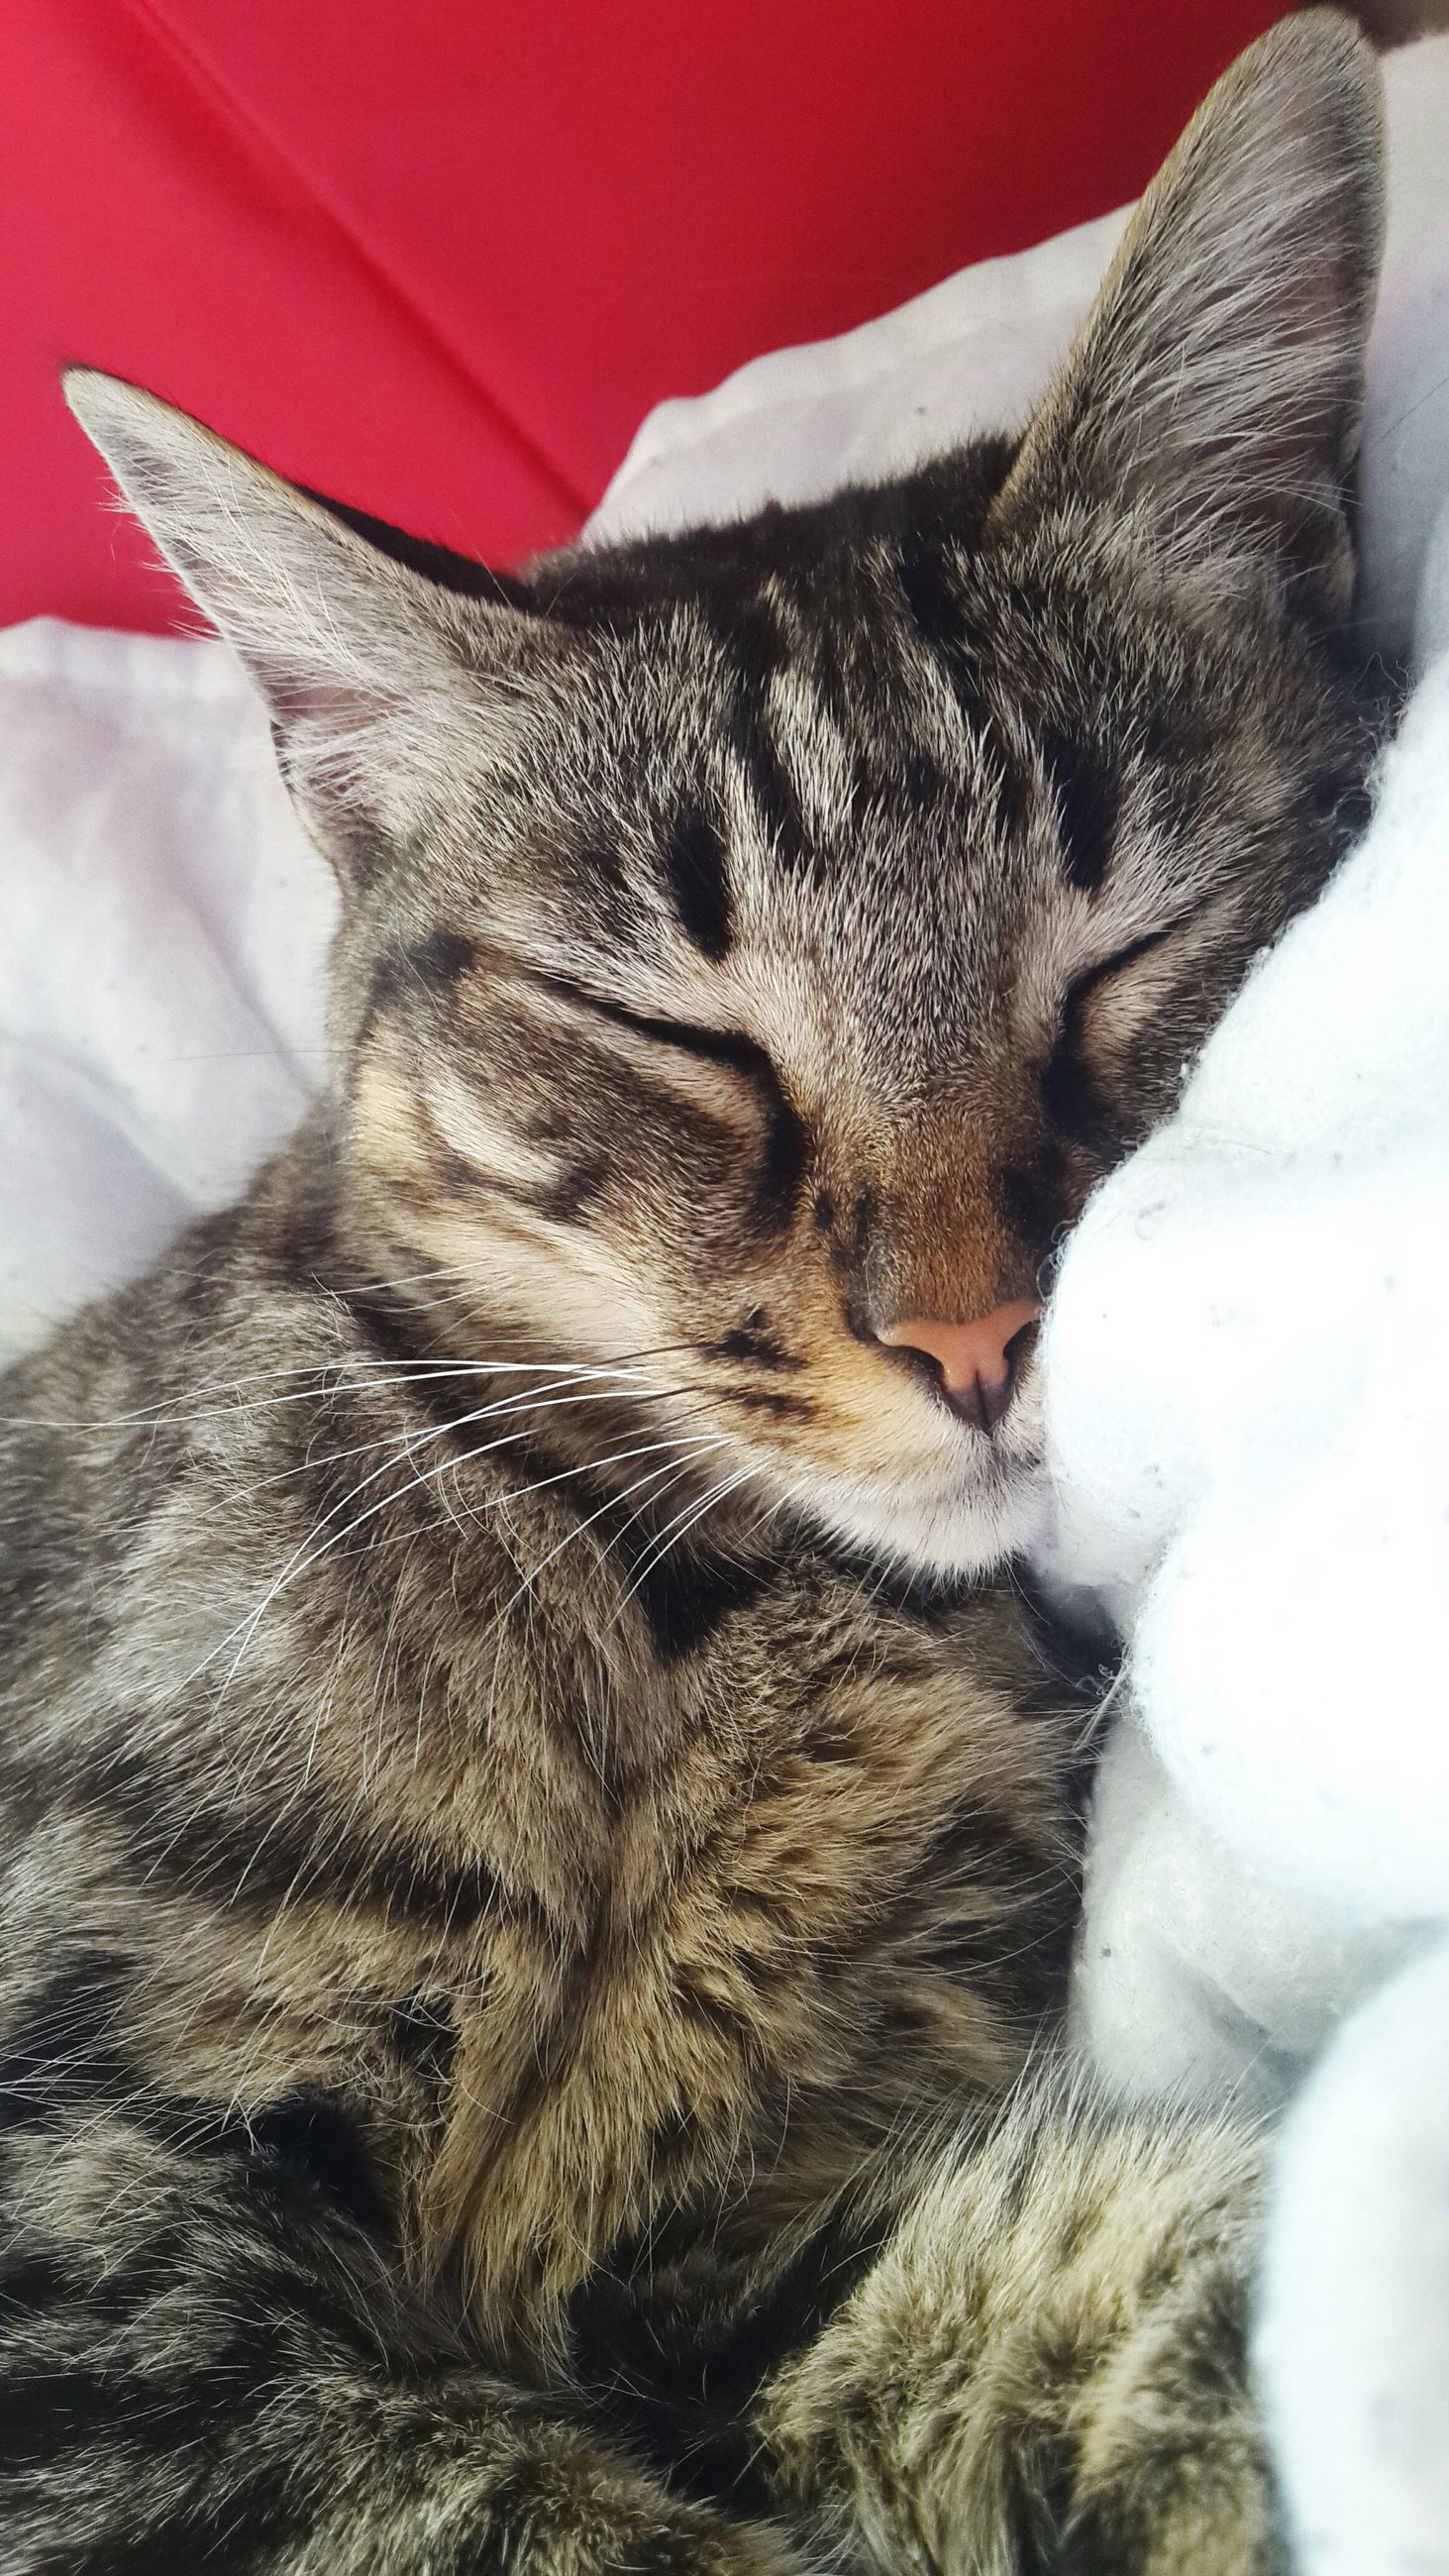 mammal, pets, animal themes, domestic animals, domestic cat, one animal, close-up, indoors, bed, no people, feline, day